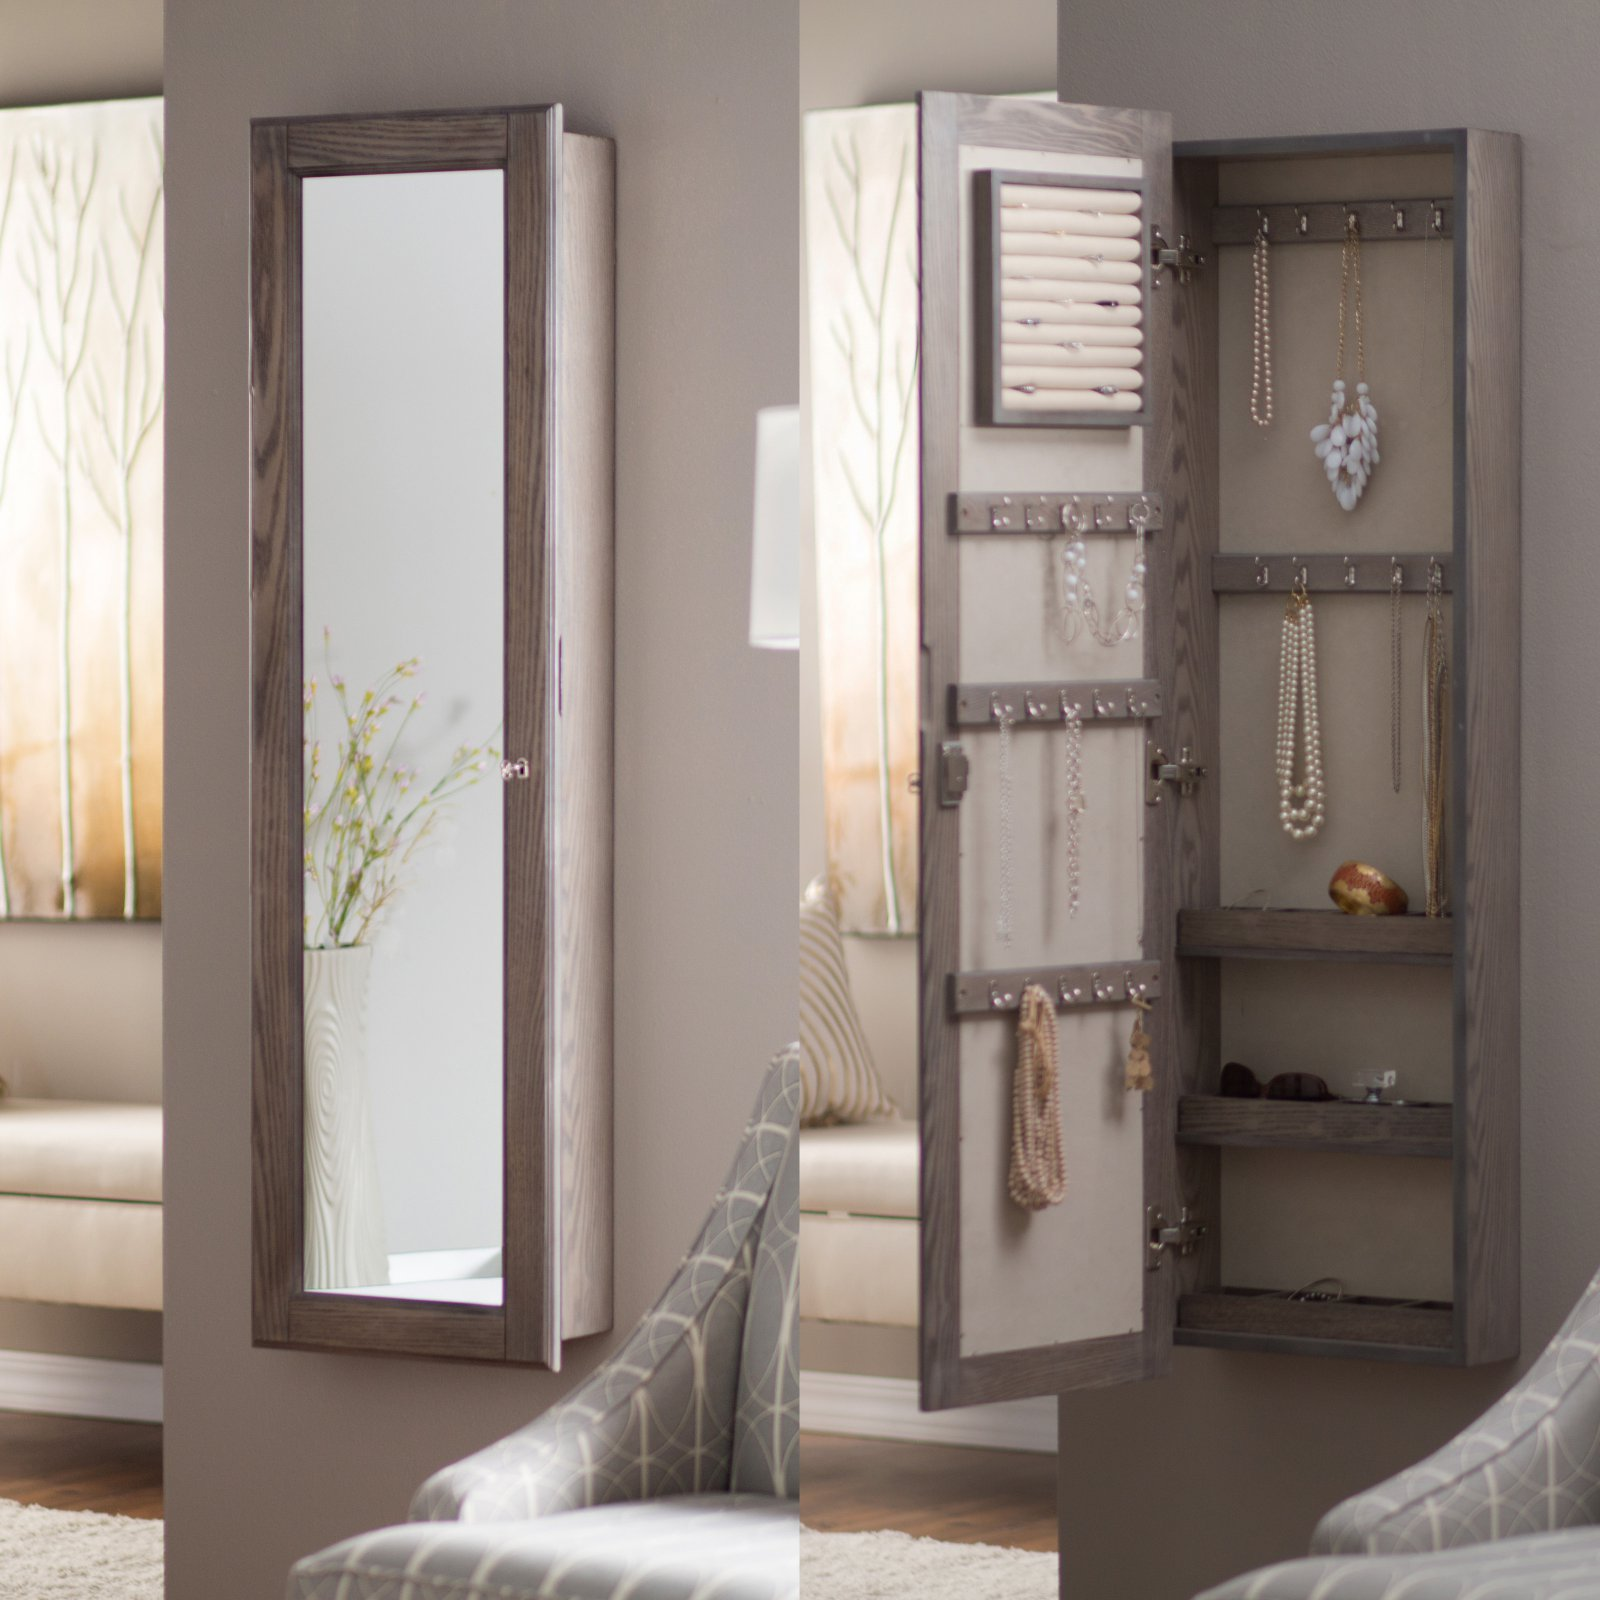 Mirrored wall mounted jewelry armoire